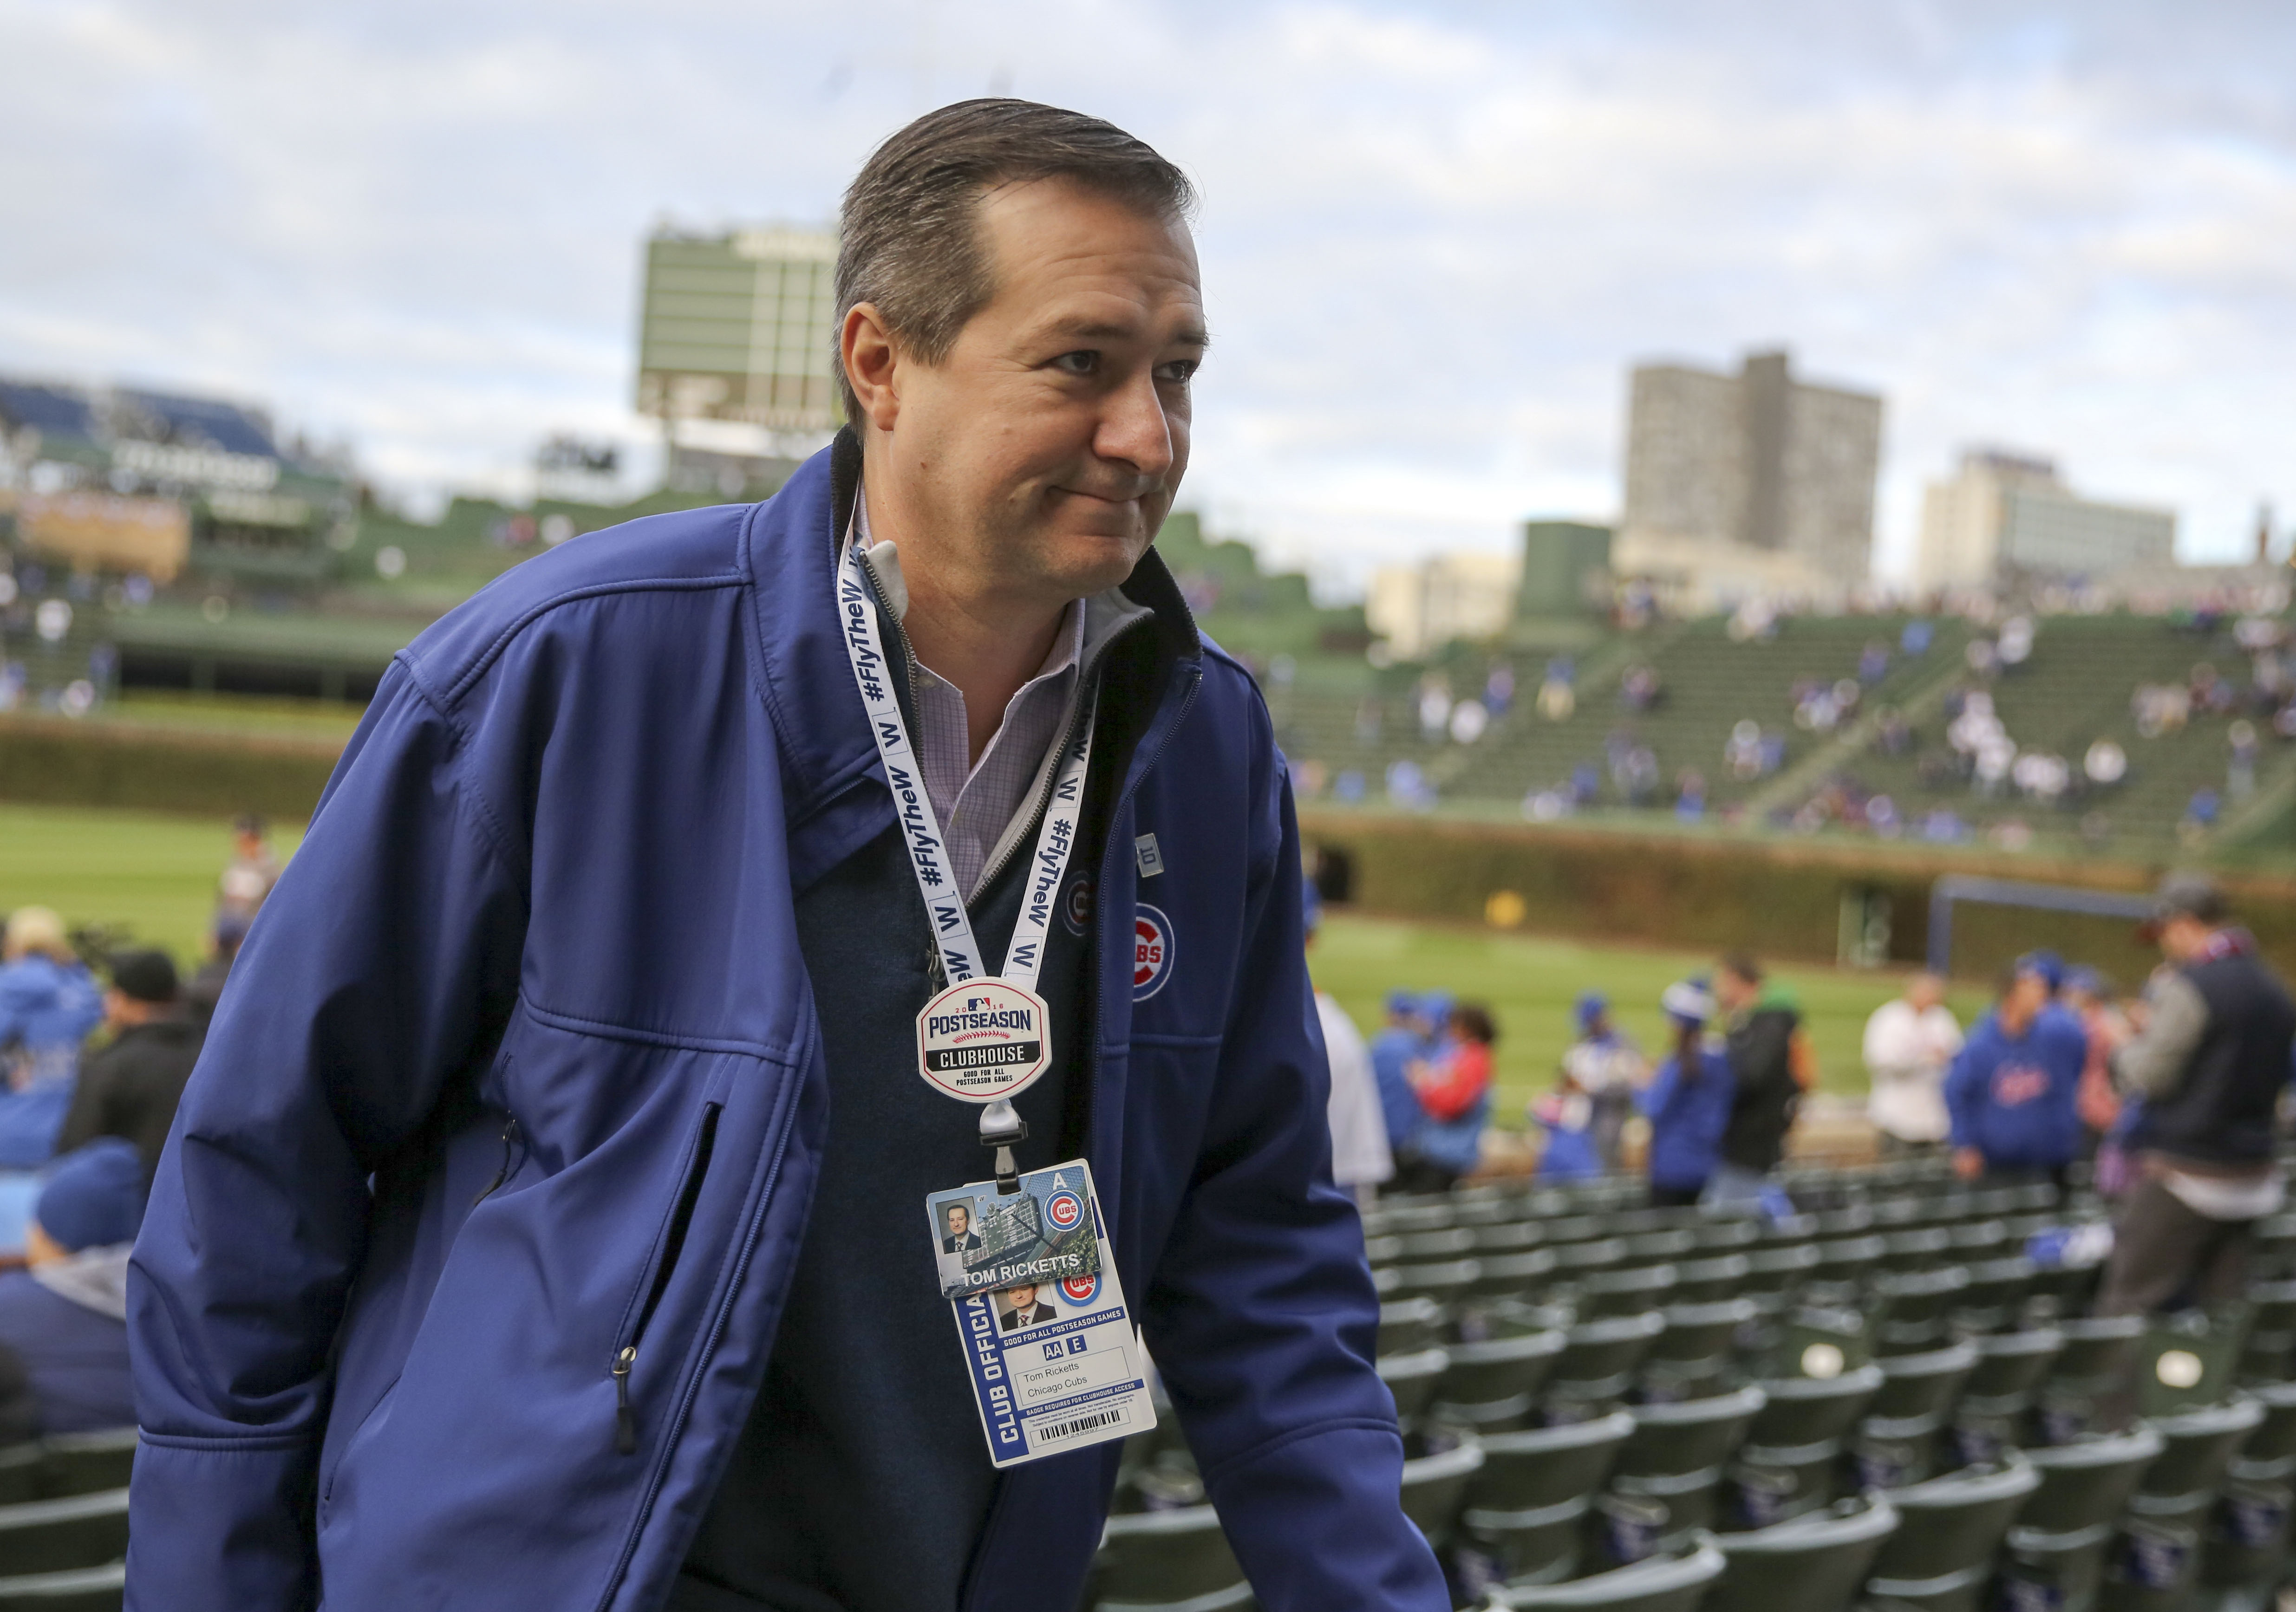 9645283-mlb-world-series-cleveland-indians-at-chicago-cubs